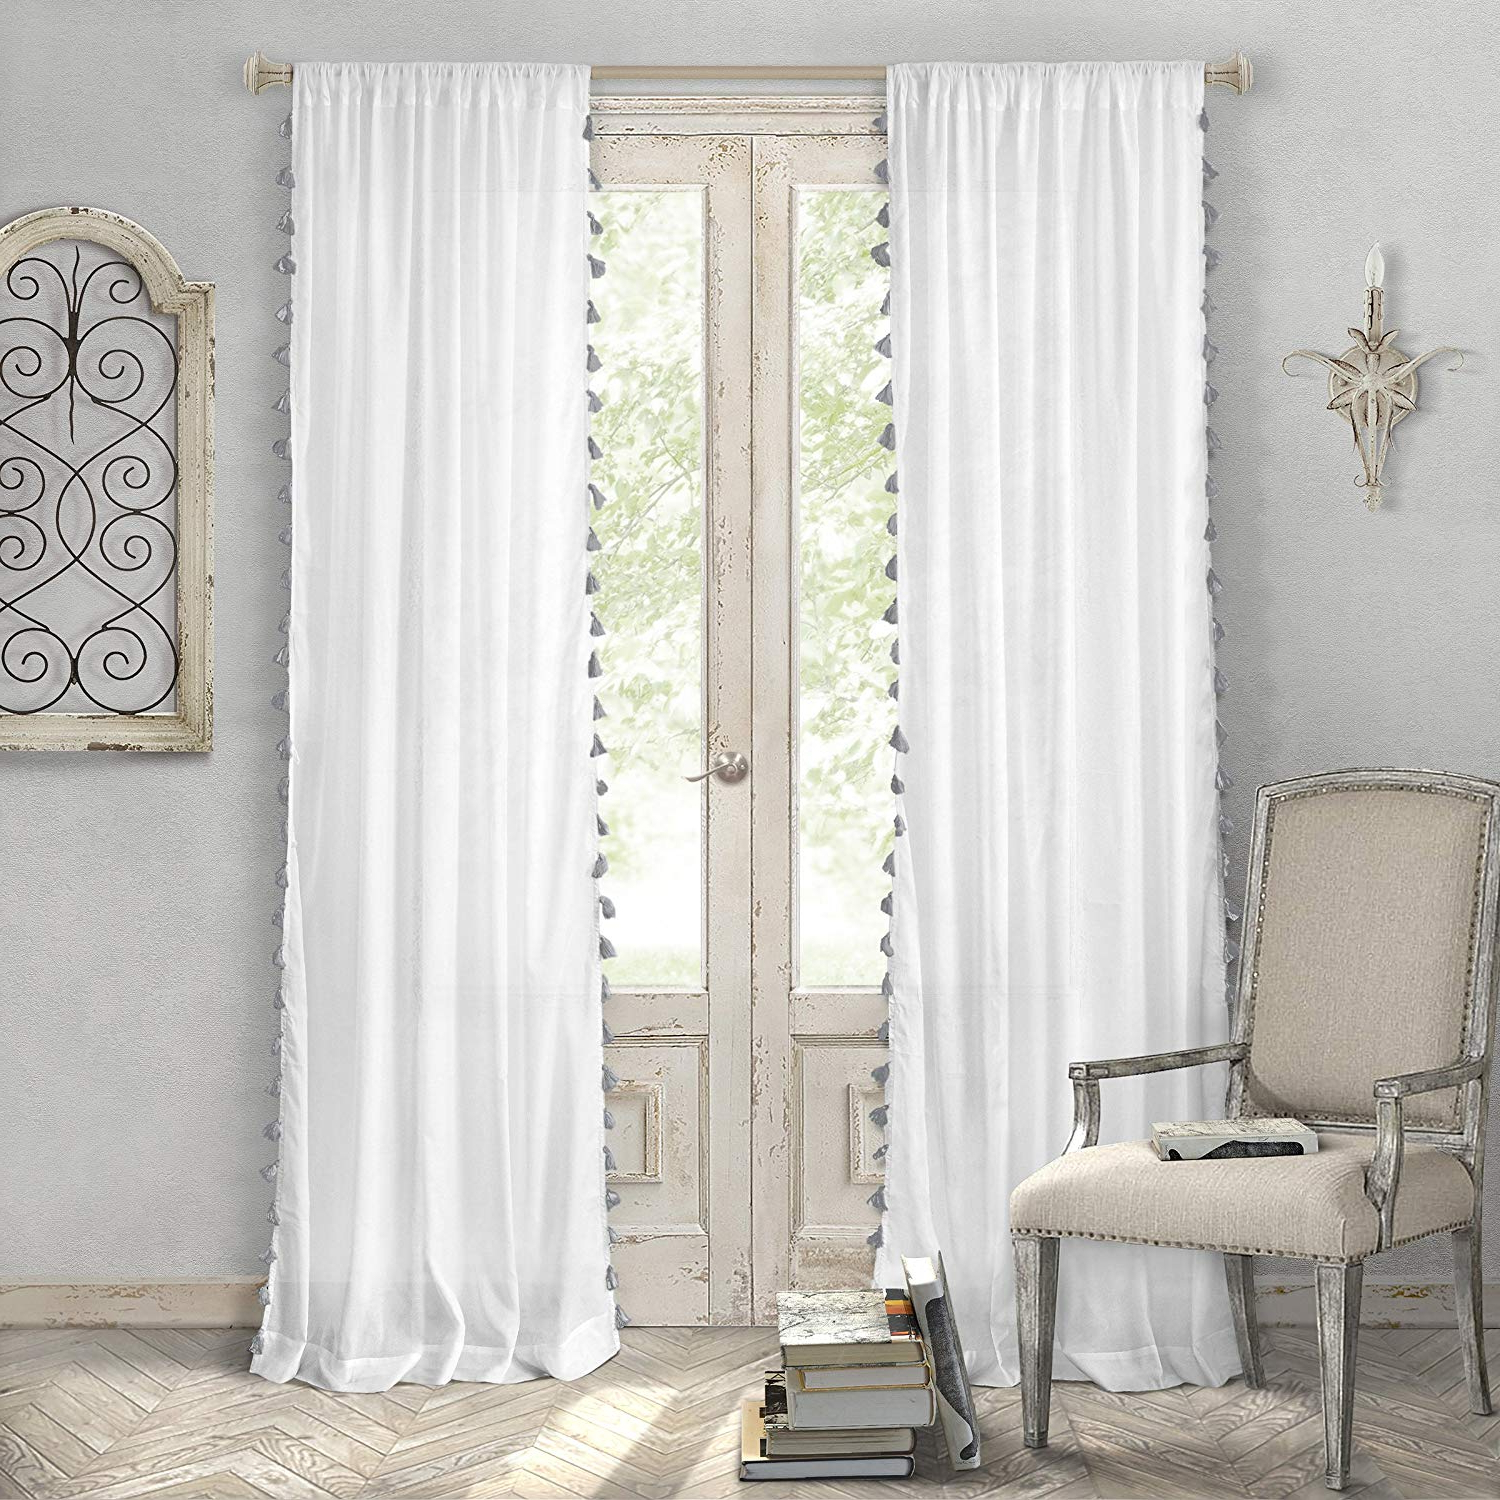 "Well Known Elrene Home Fashions Bianca Semi Sheer Rod Pocket Window Curtain Panel With  Tassels, 52"" X 84"" (1, Gray With Regard To Tassels Applique Sheer Rod Pocket Top Curtain Panel Pairs (View 18 of 20)"